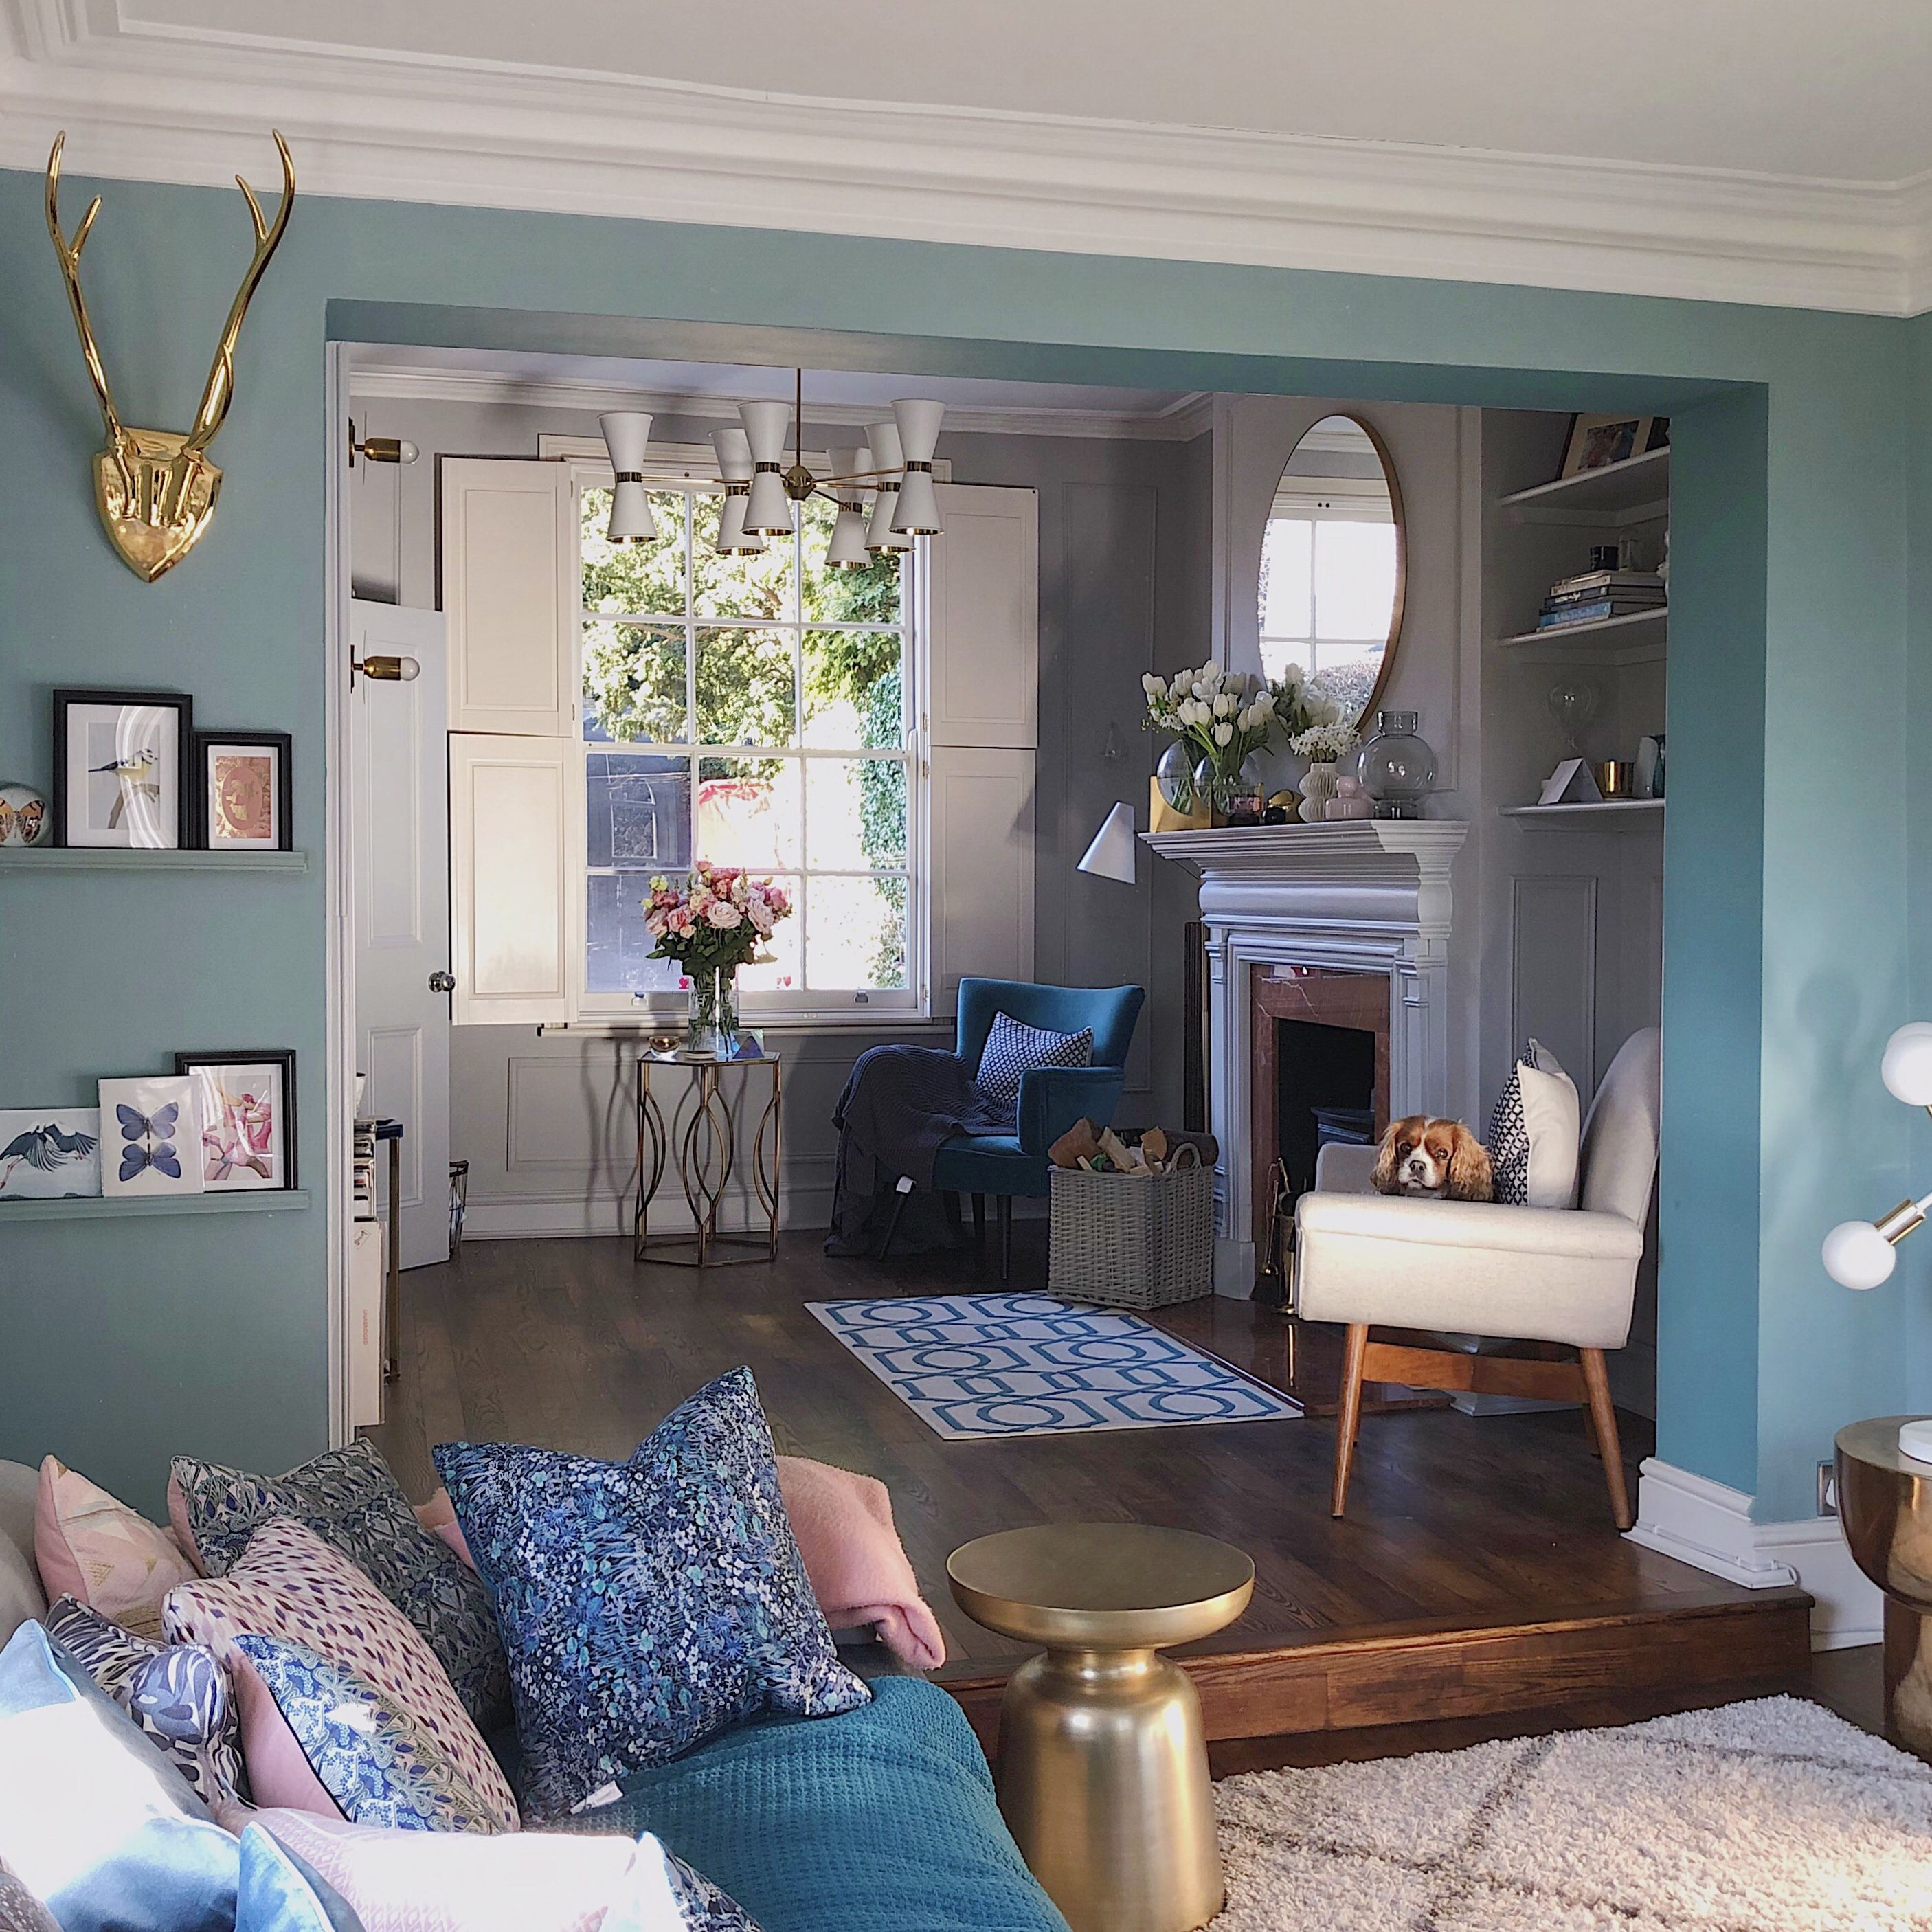 Blue Living Room Going Into A Grey Sitting Room. Old House